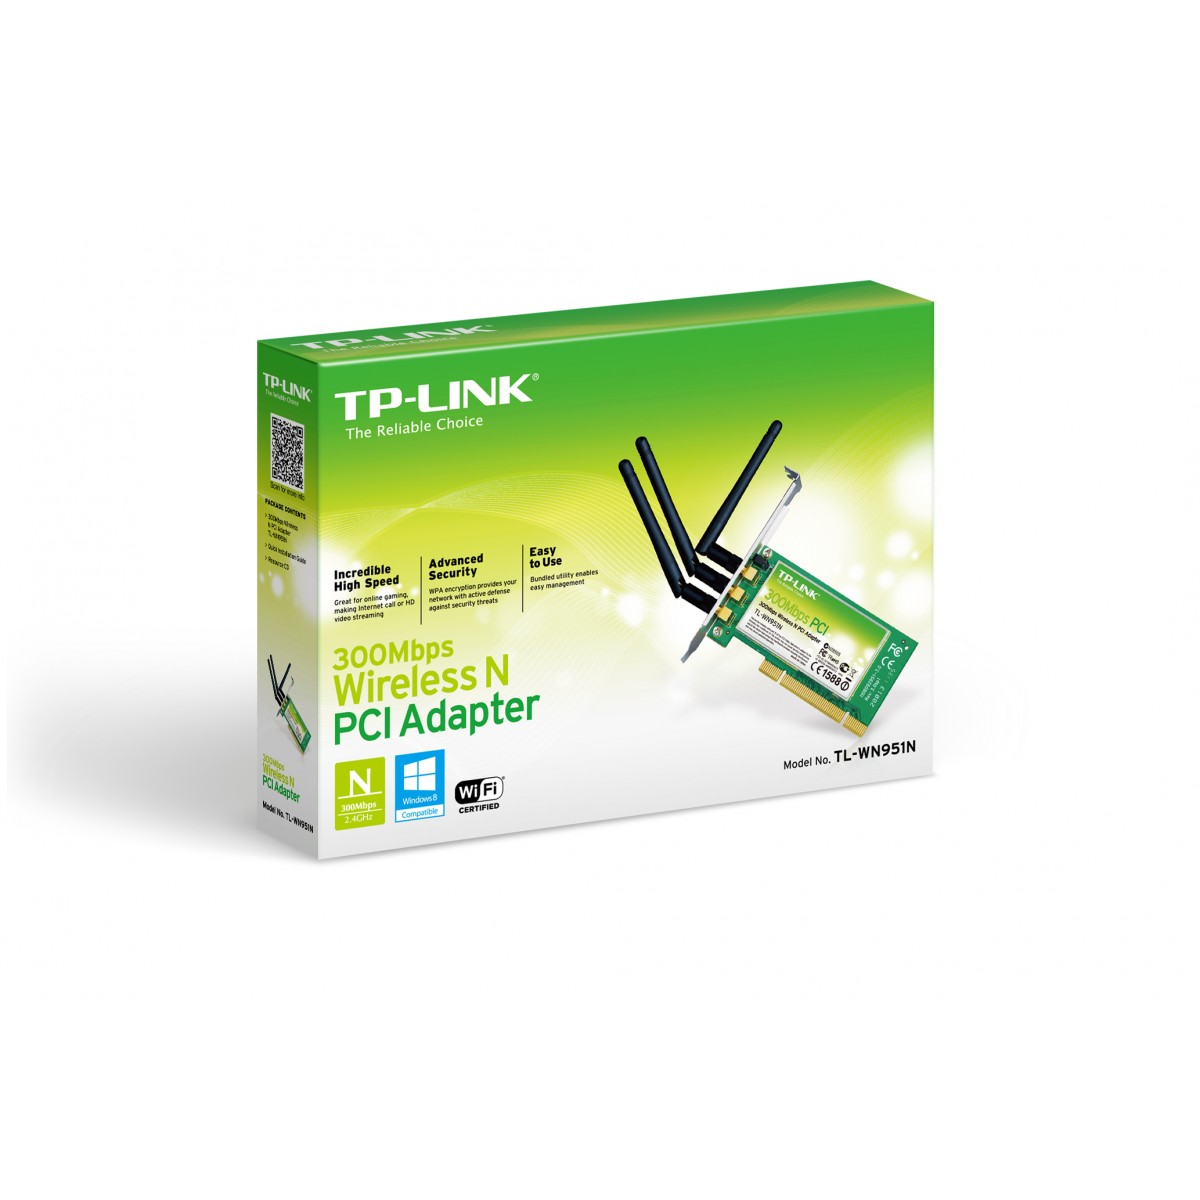 Placa de Rede PCI Wireless TL-WN951N (300Mbps) c/ 03 Antenas - Tplink